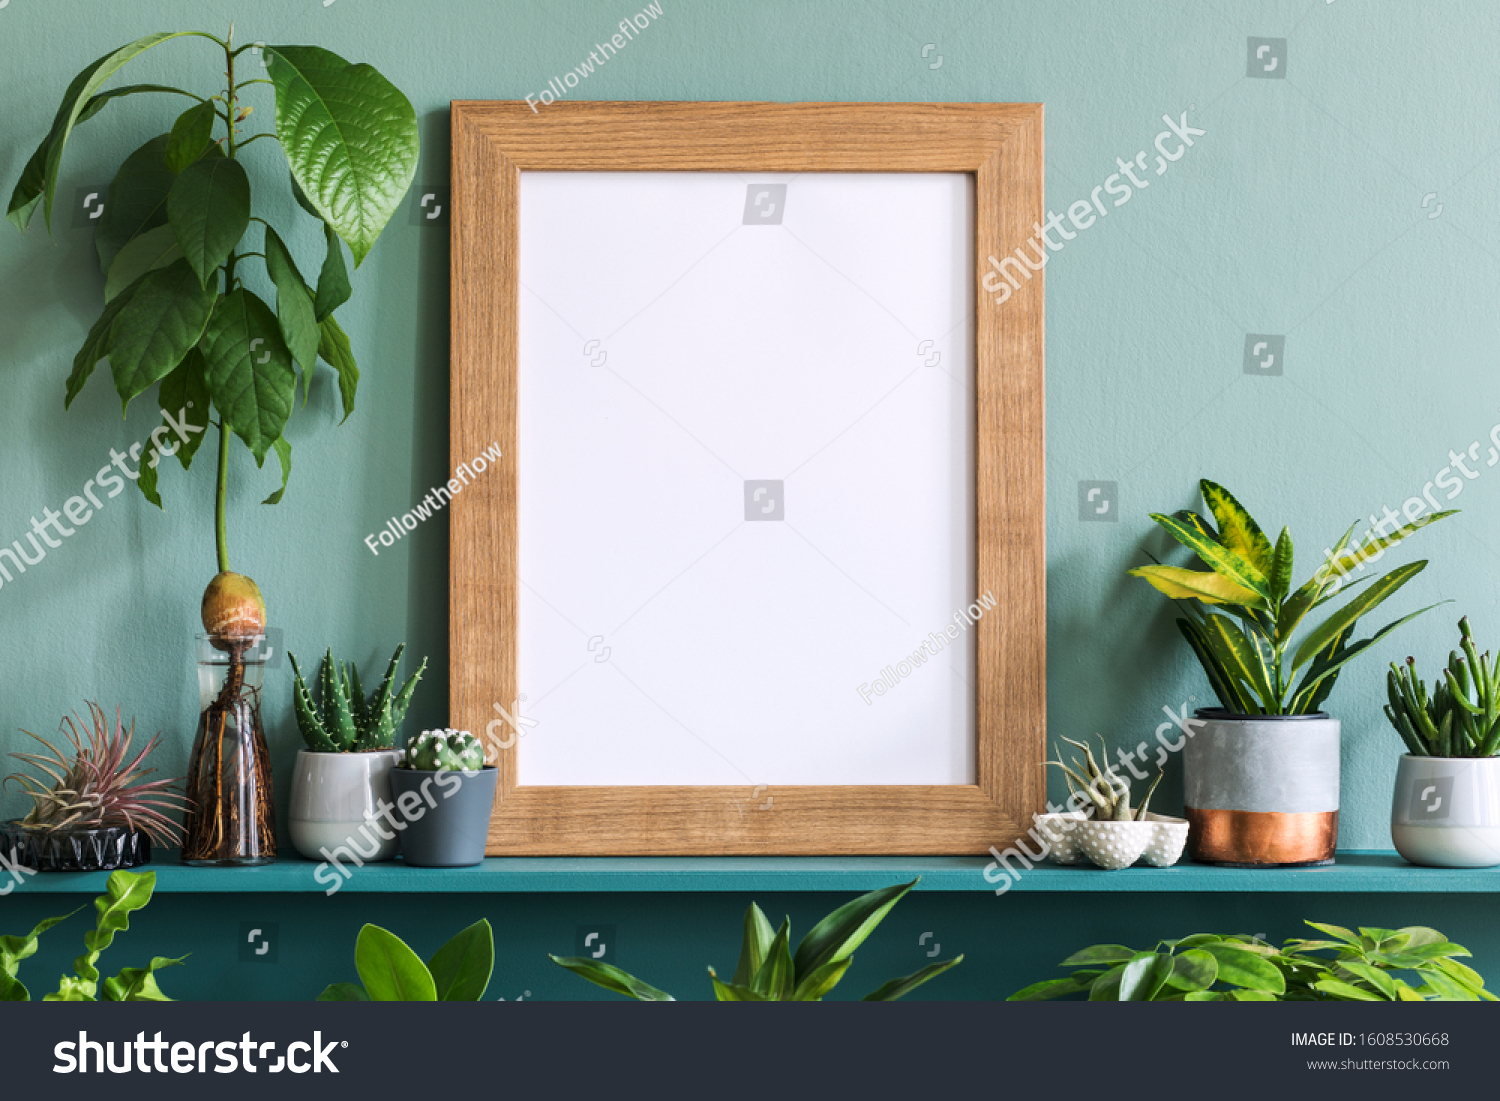 Interior design of living room with brown mock up photo frame on the green shelf with beautiful plants in different hipster and design pots. Elegant personal accessories. Home gardening. Template.